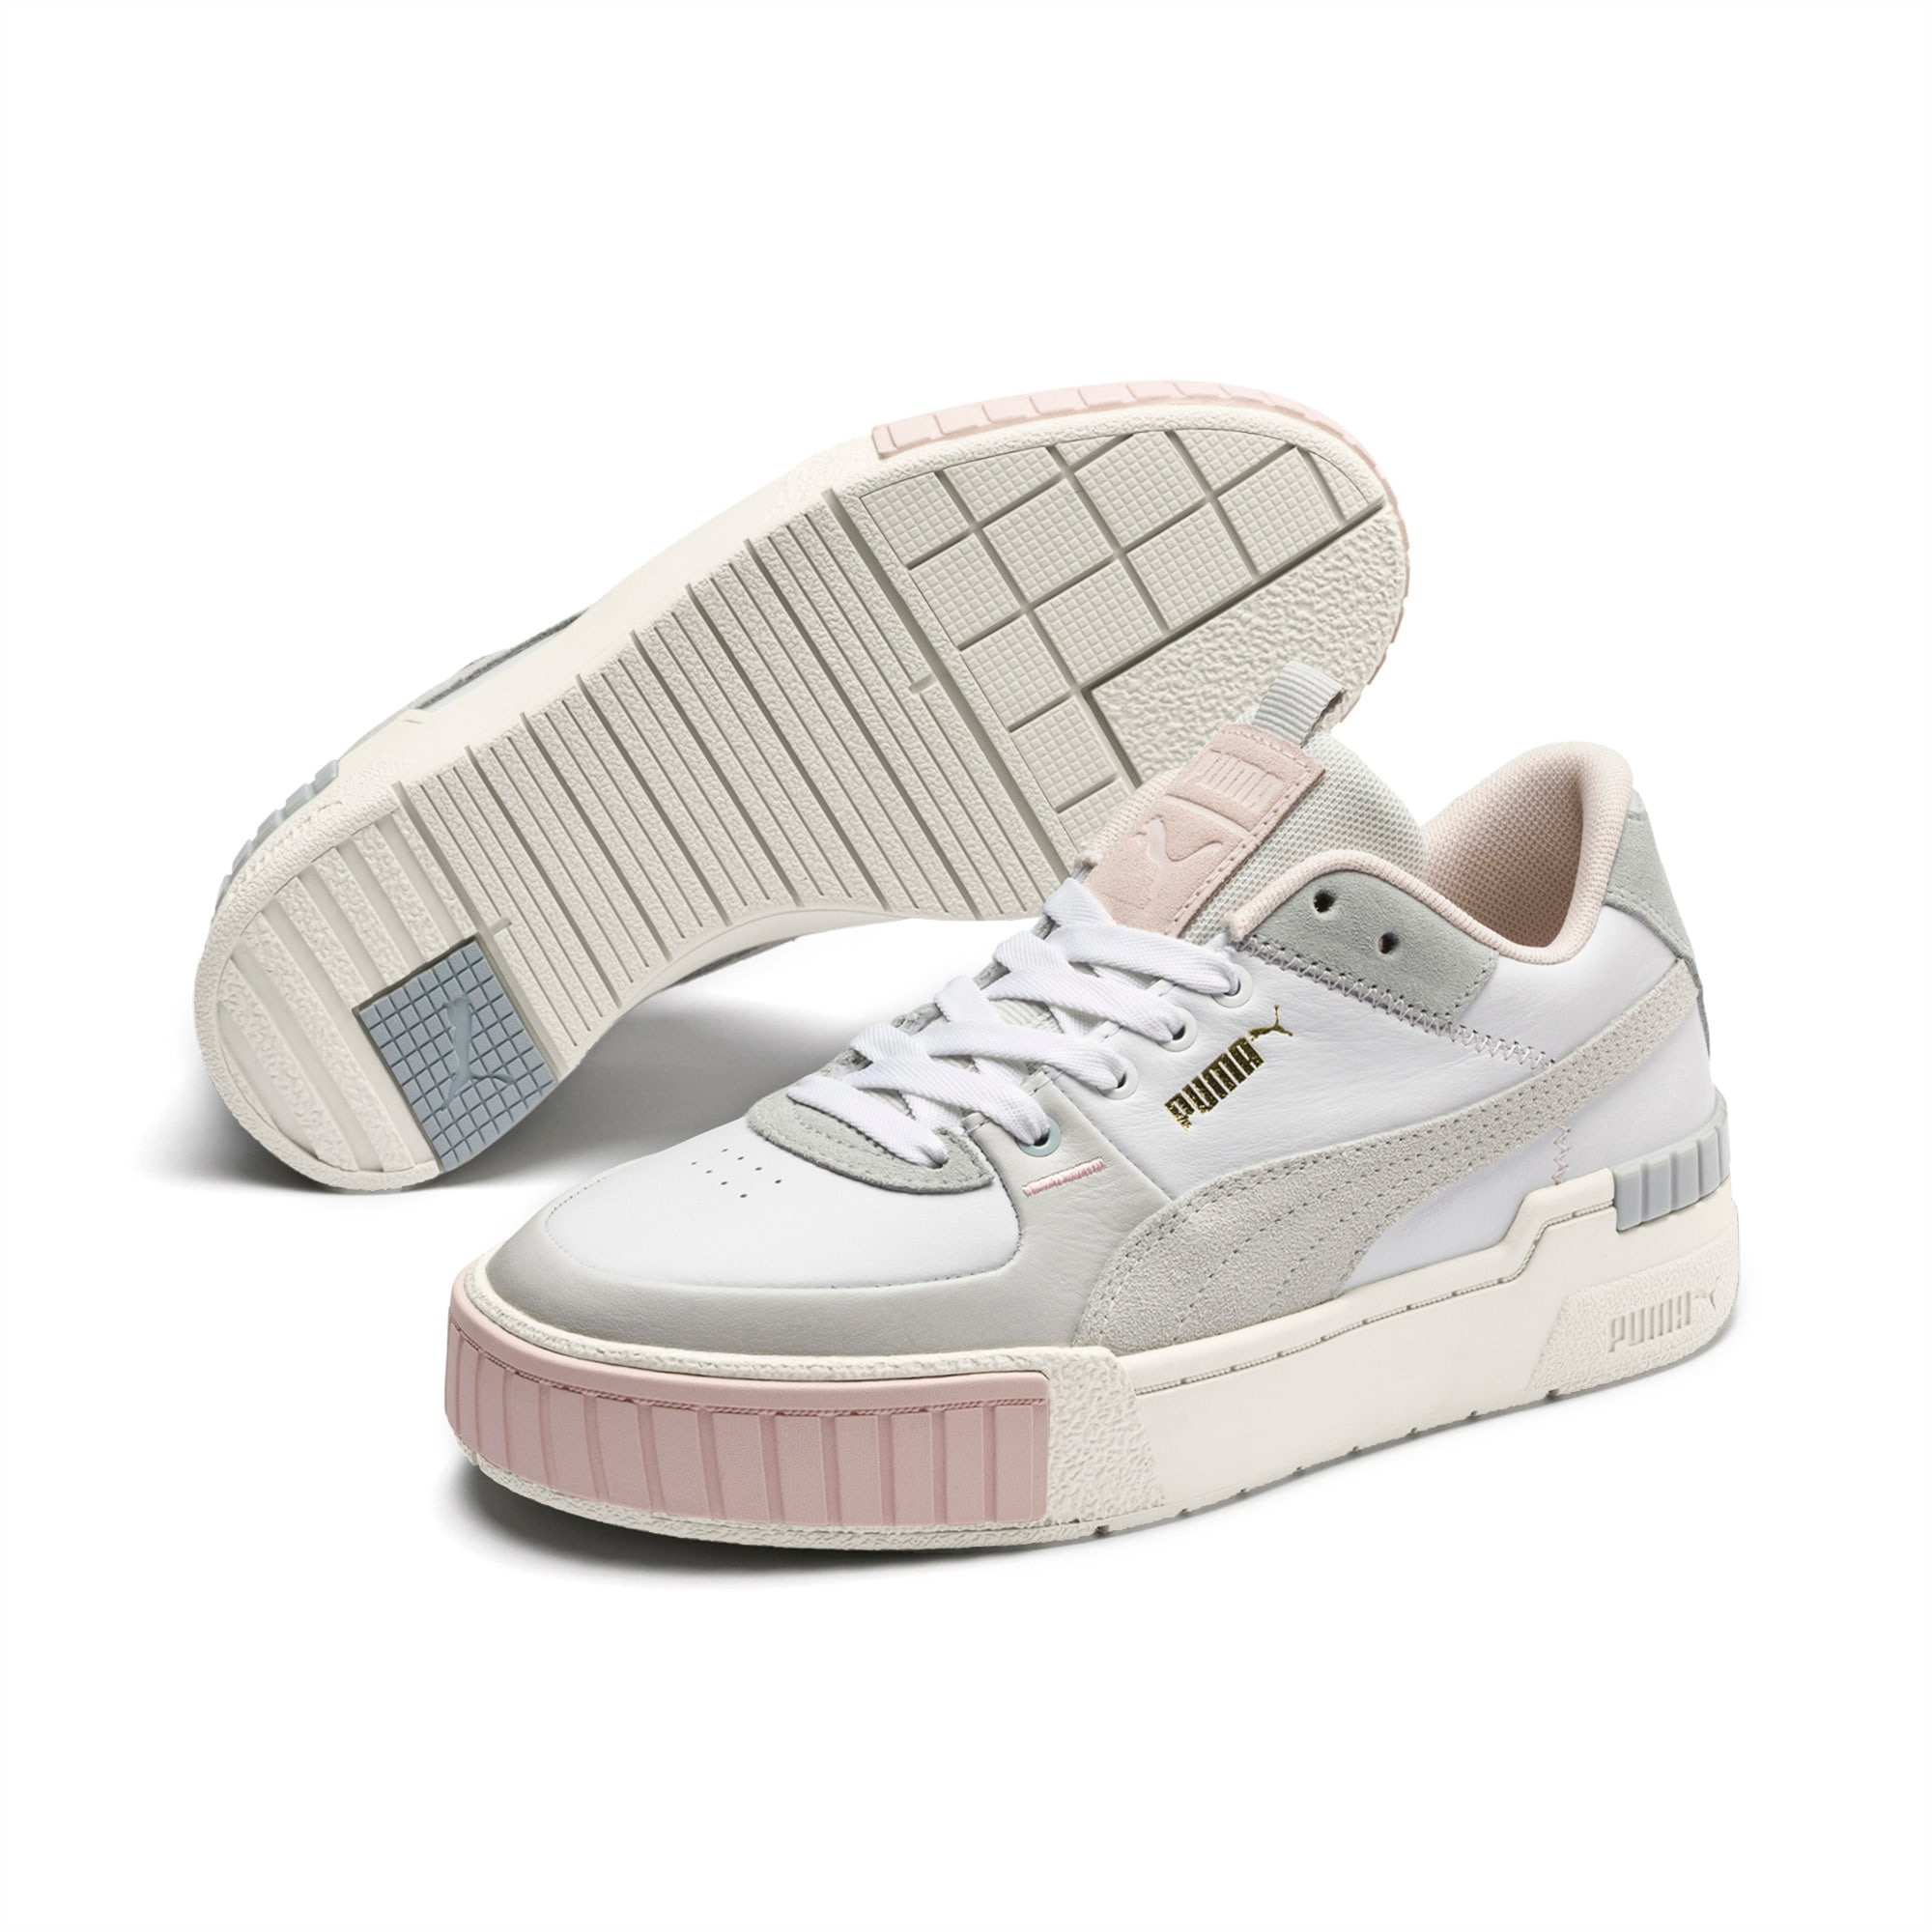 Cali Sport Women's Sneakers